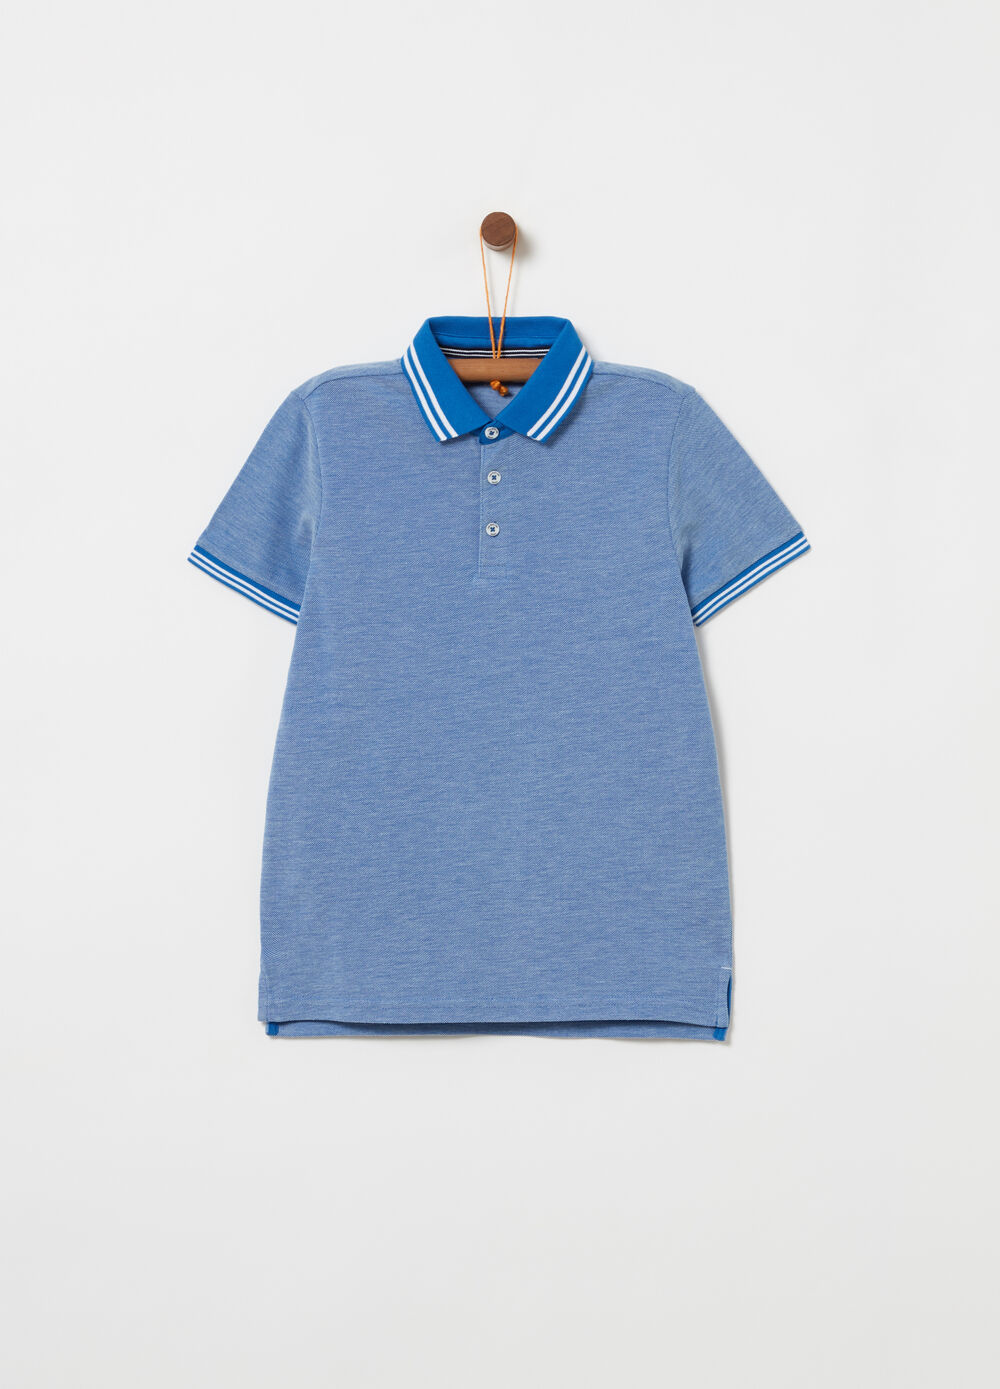 Mélange cotton piquet polo shirt with ribbing